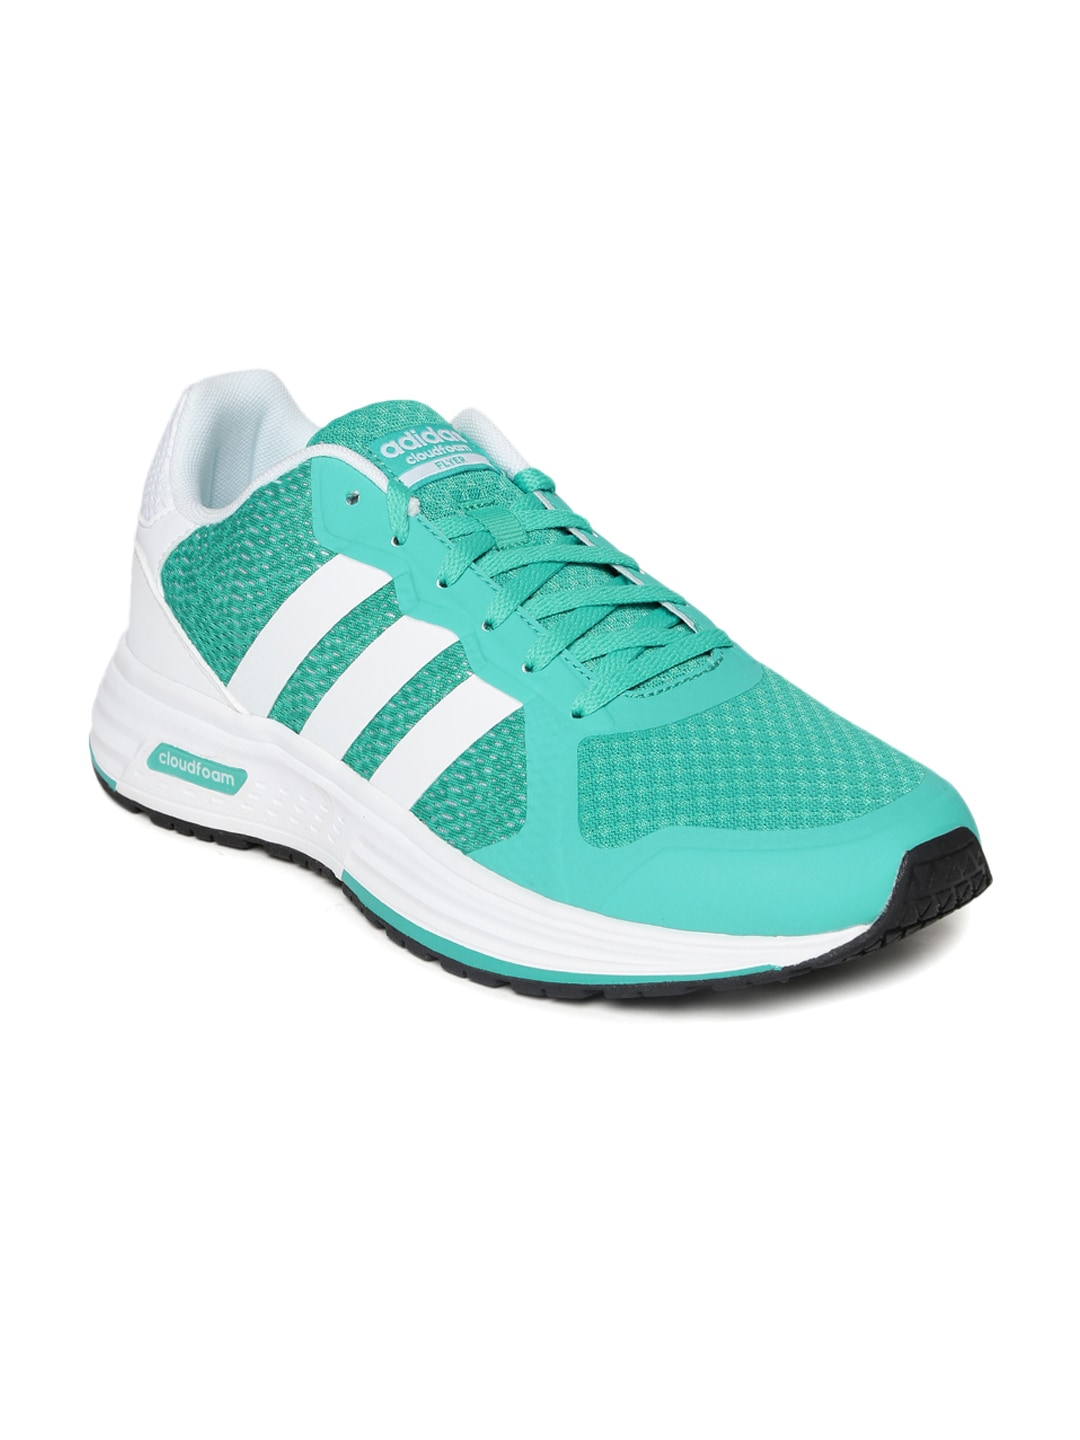 Adidas aw5248 Neo Women Green Cloudfoam Flyer Casual Shoes ... 12a7cdc599